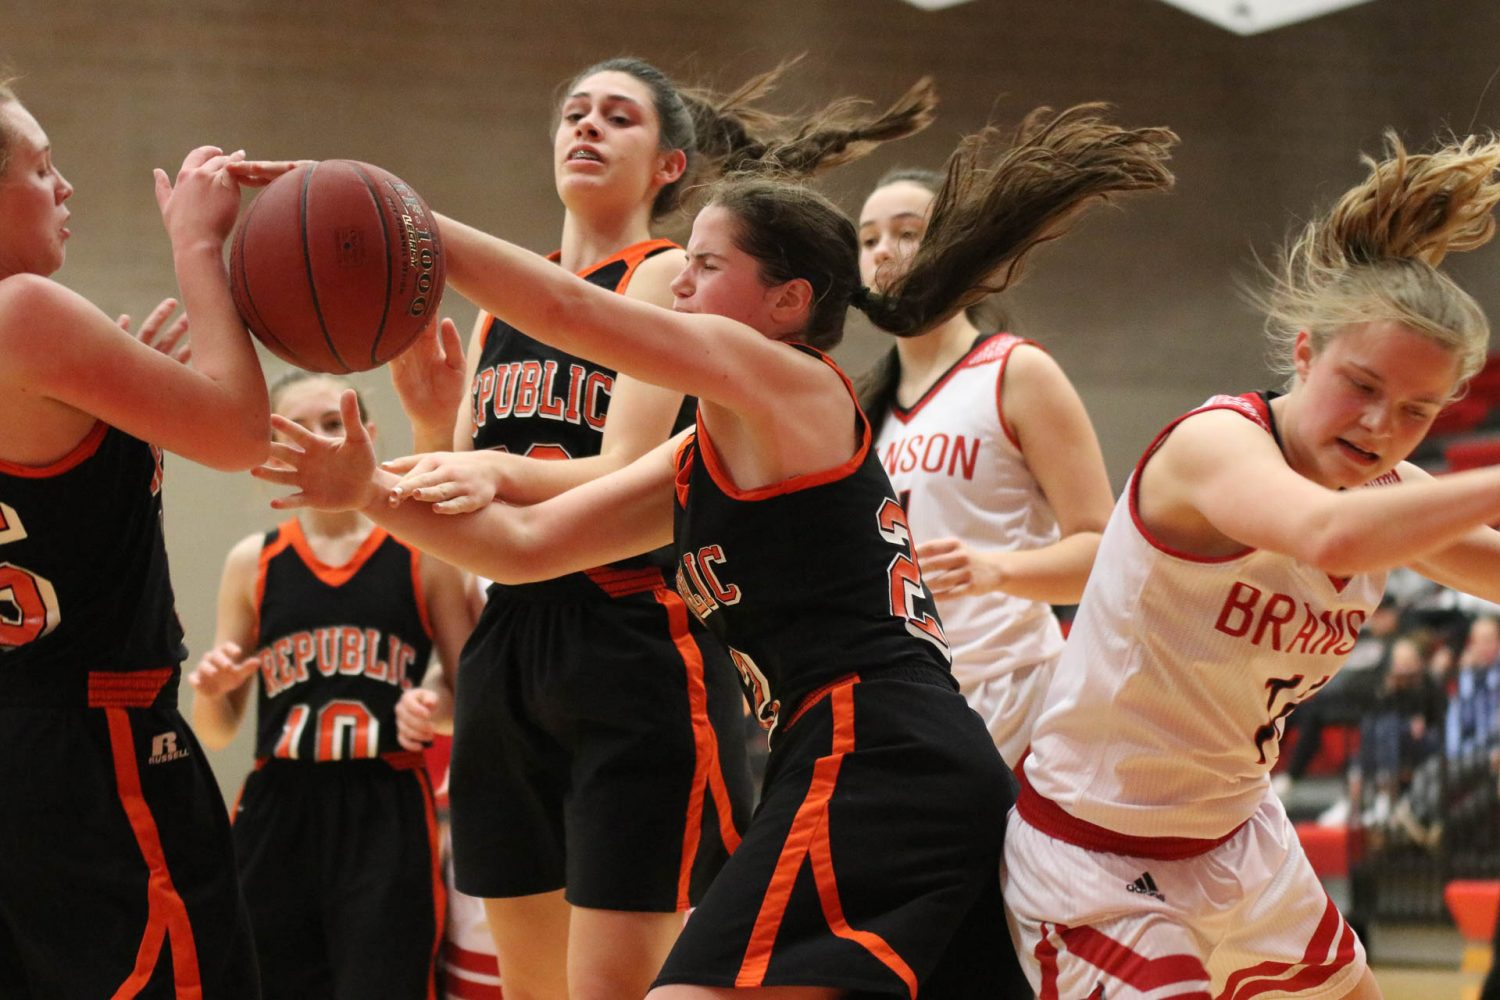 Photos:  Freshman Girls Basketball Vs Branson